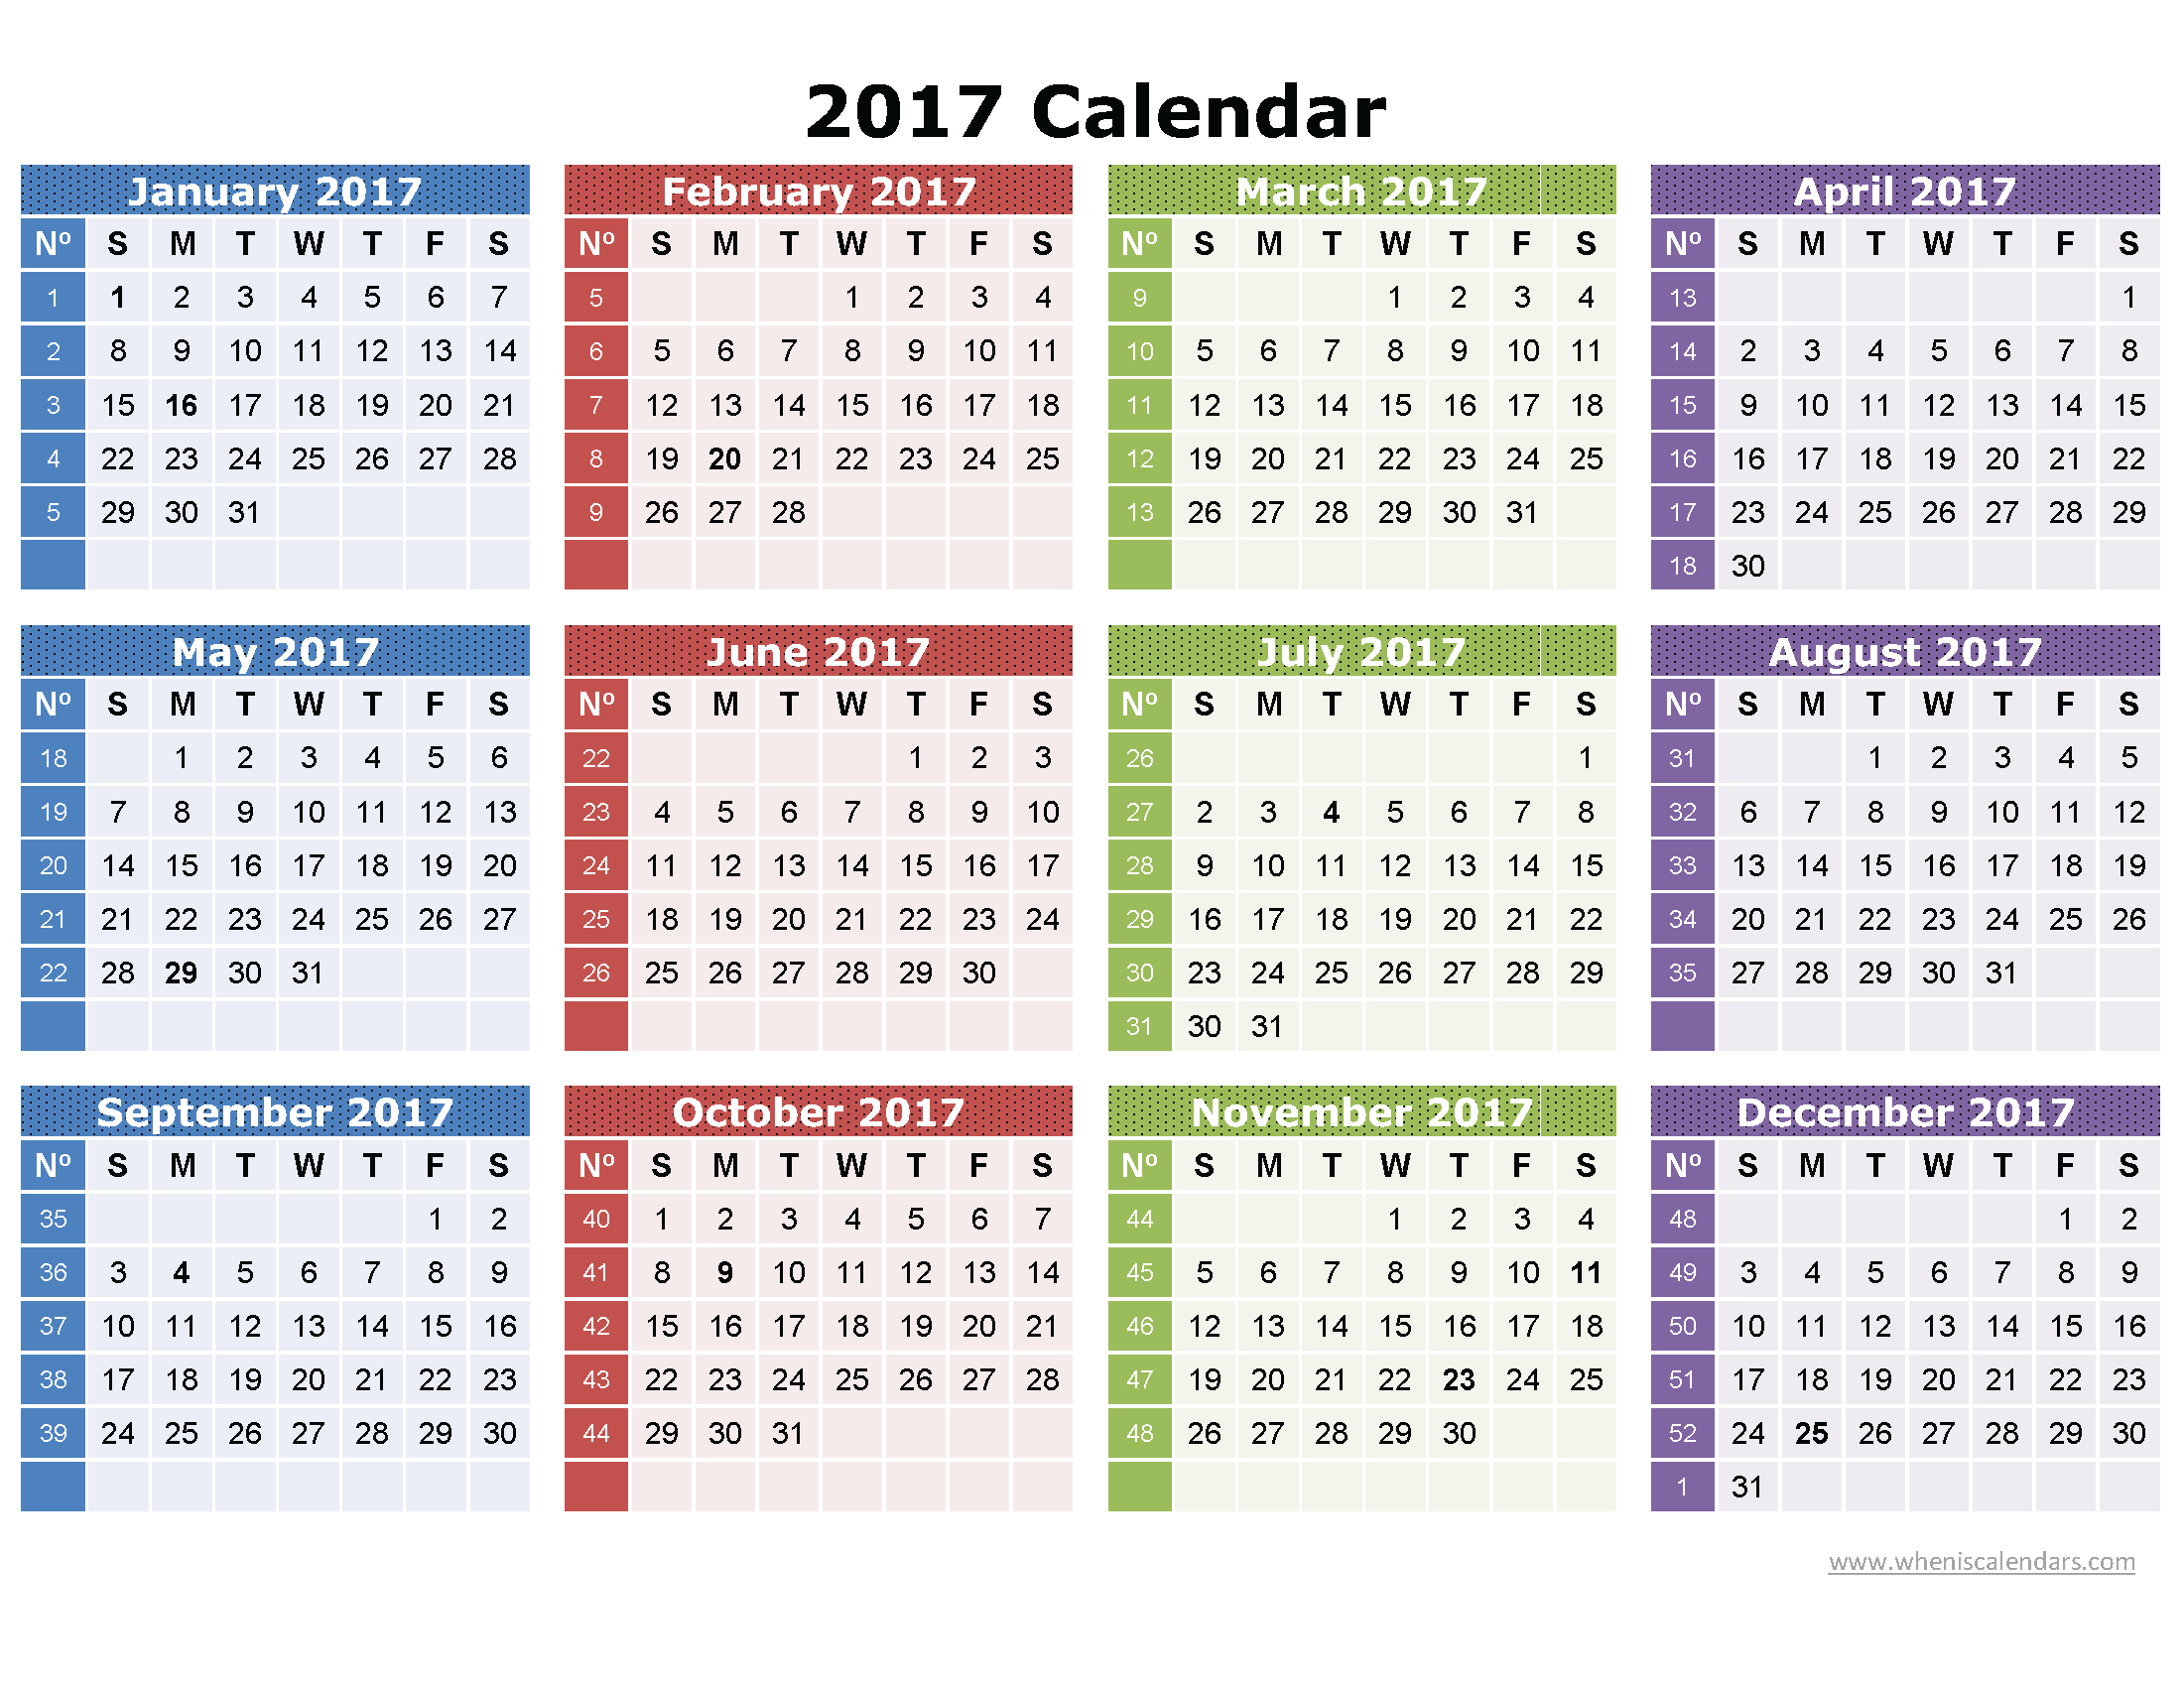 Year Calendar On Page : Calendar printable one page download image full